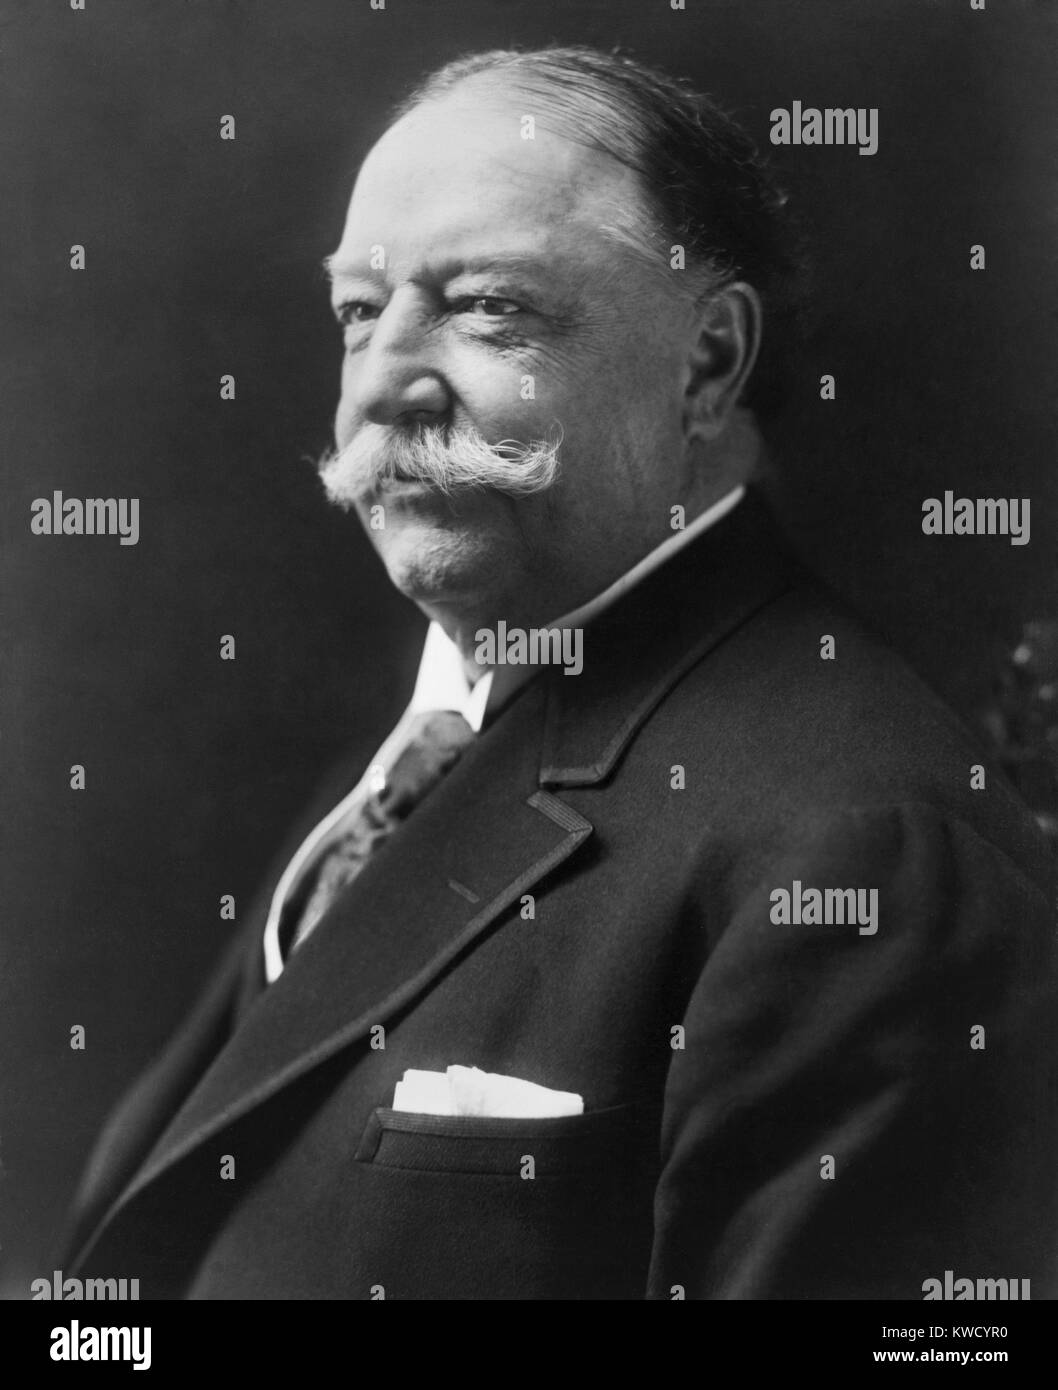 Former President William H. Taft, in 1916. He was then Kent Professor of Law and Legal History at Yale Law School. Stock Photo